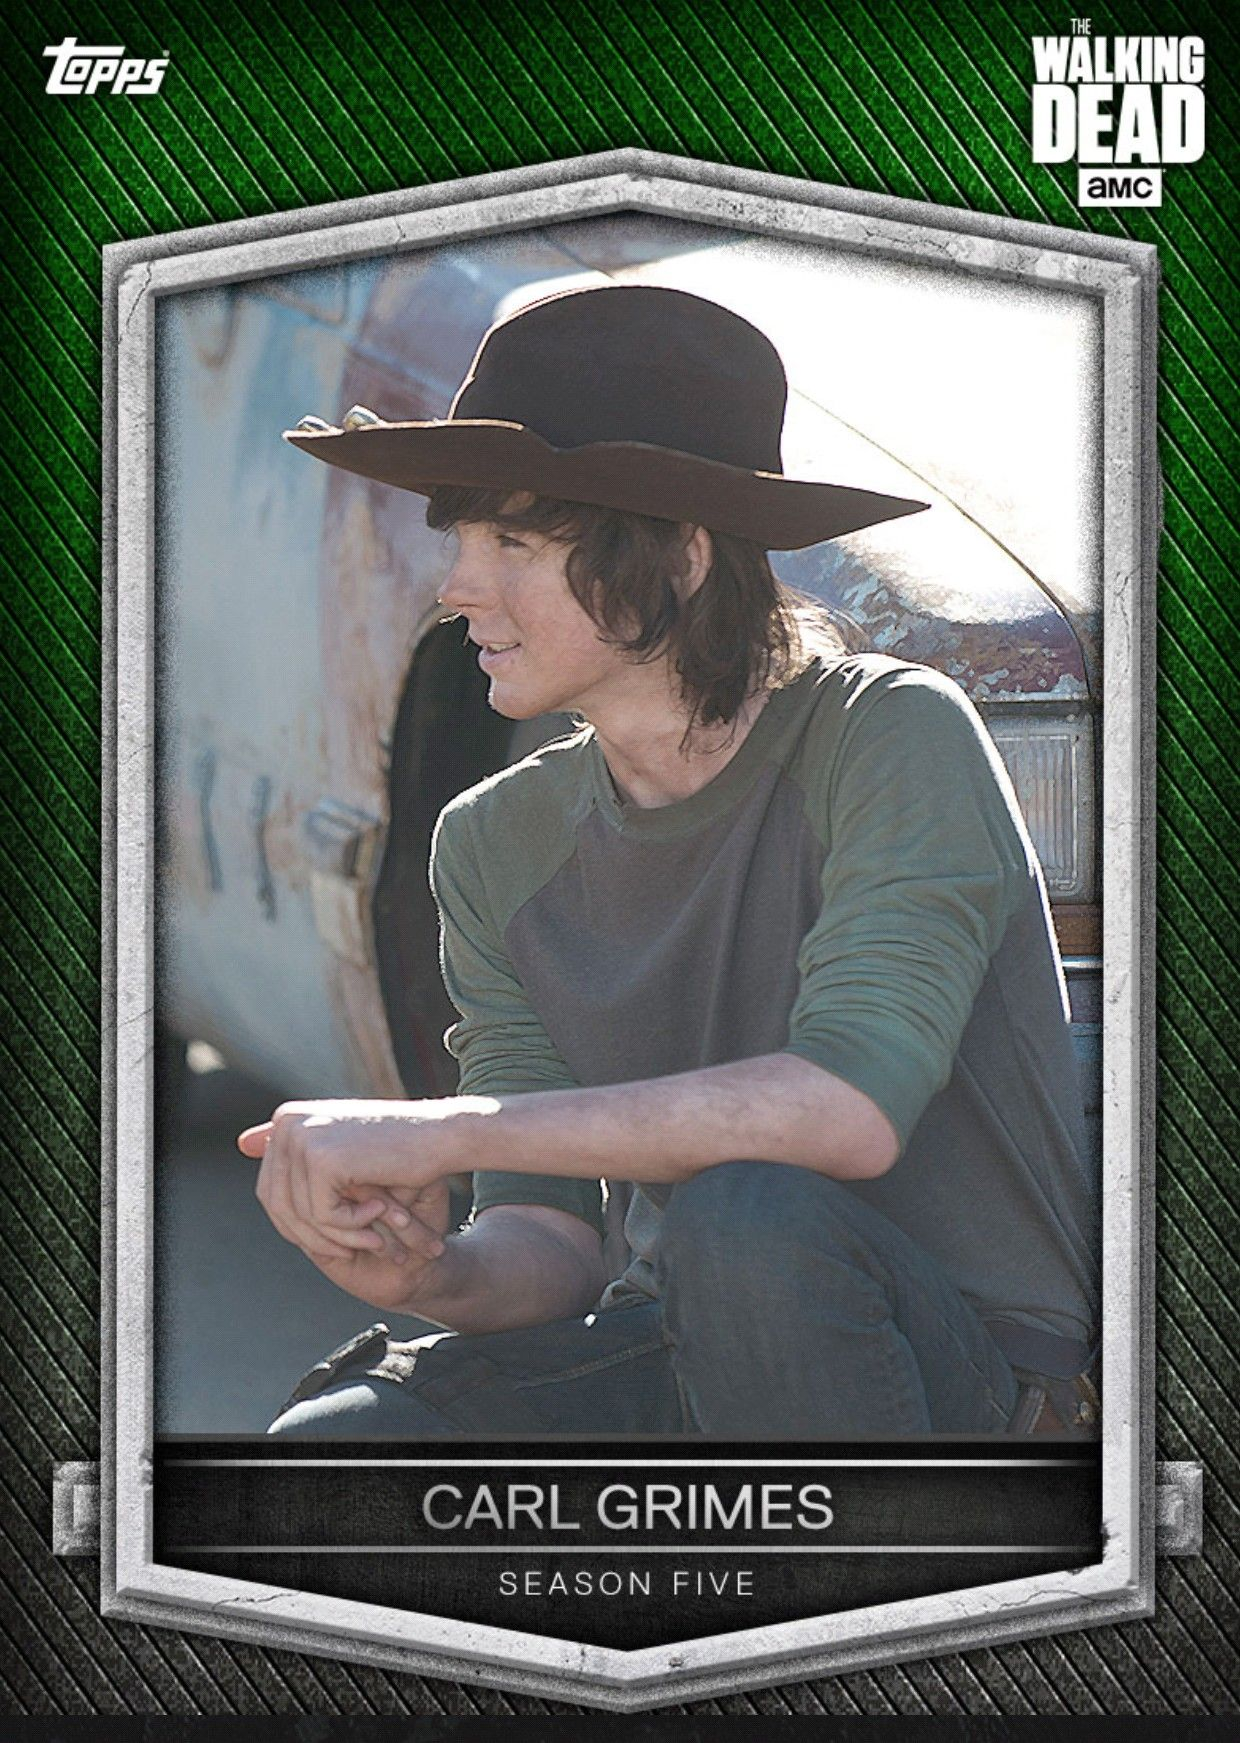 Pin By Starr On Cards Twd Fear The Walking Dead Walking Dead Pictures Walking Dead Funny